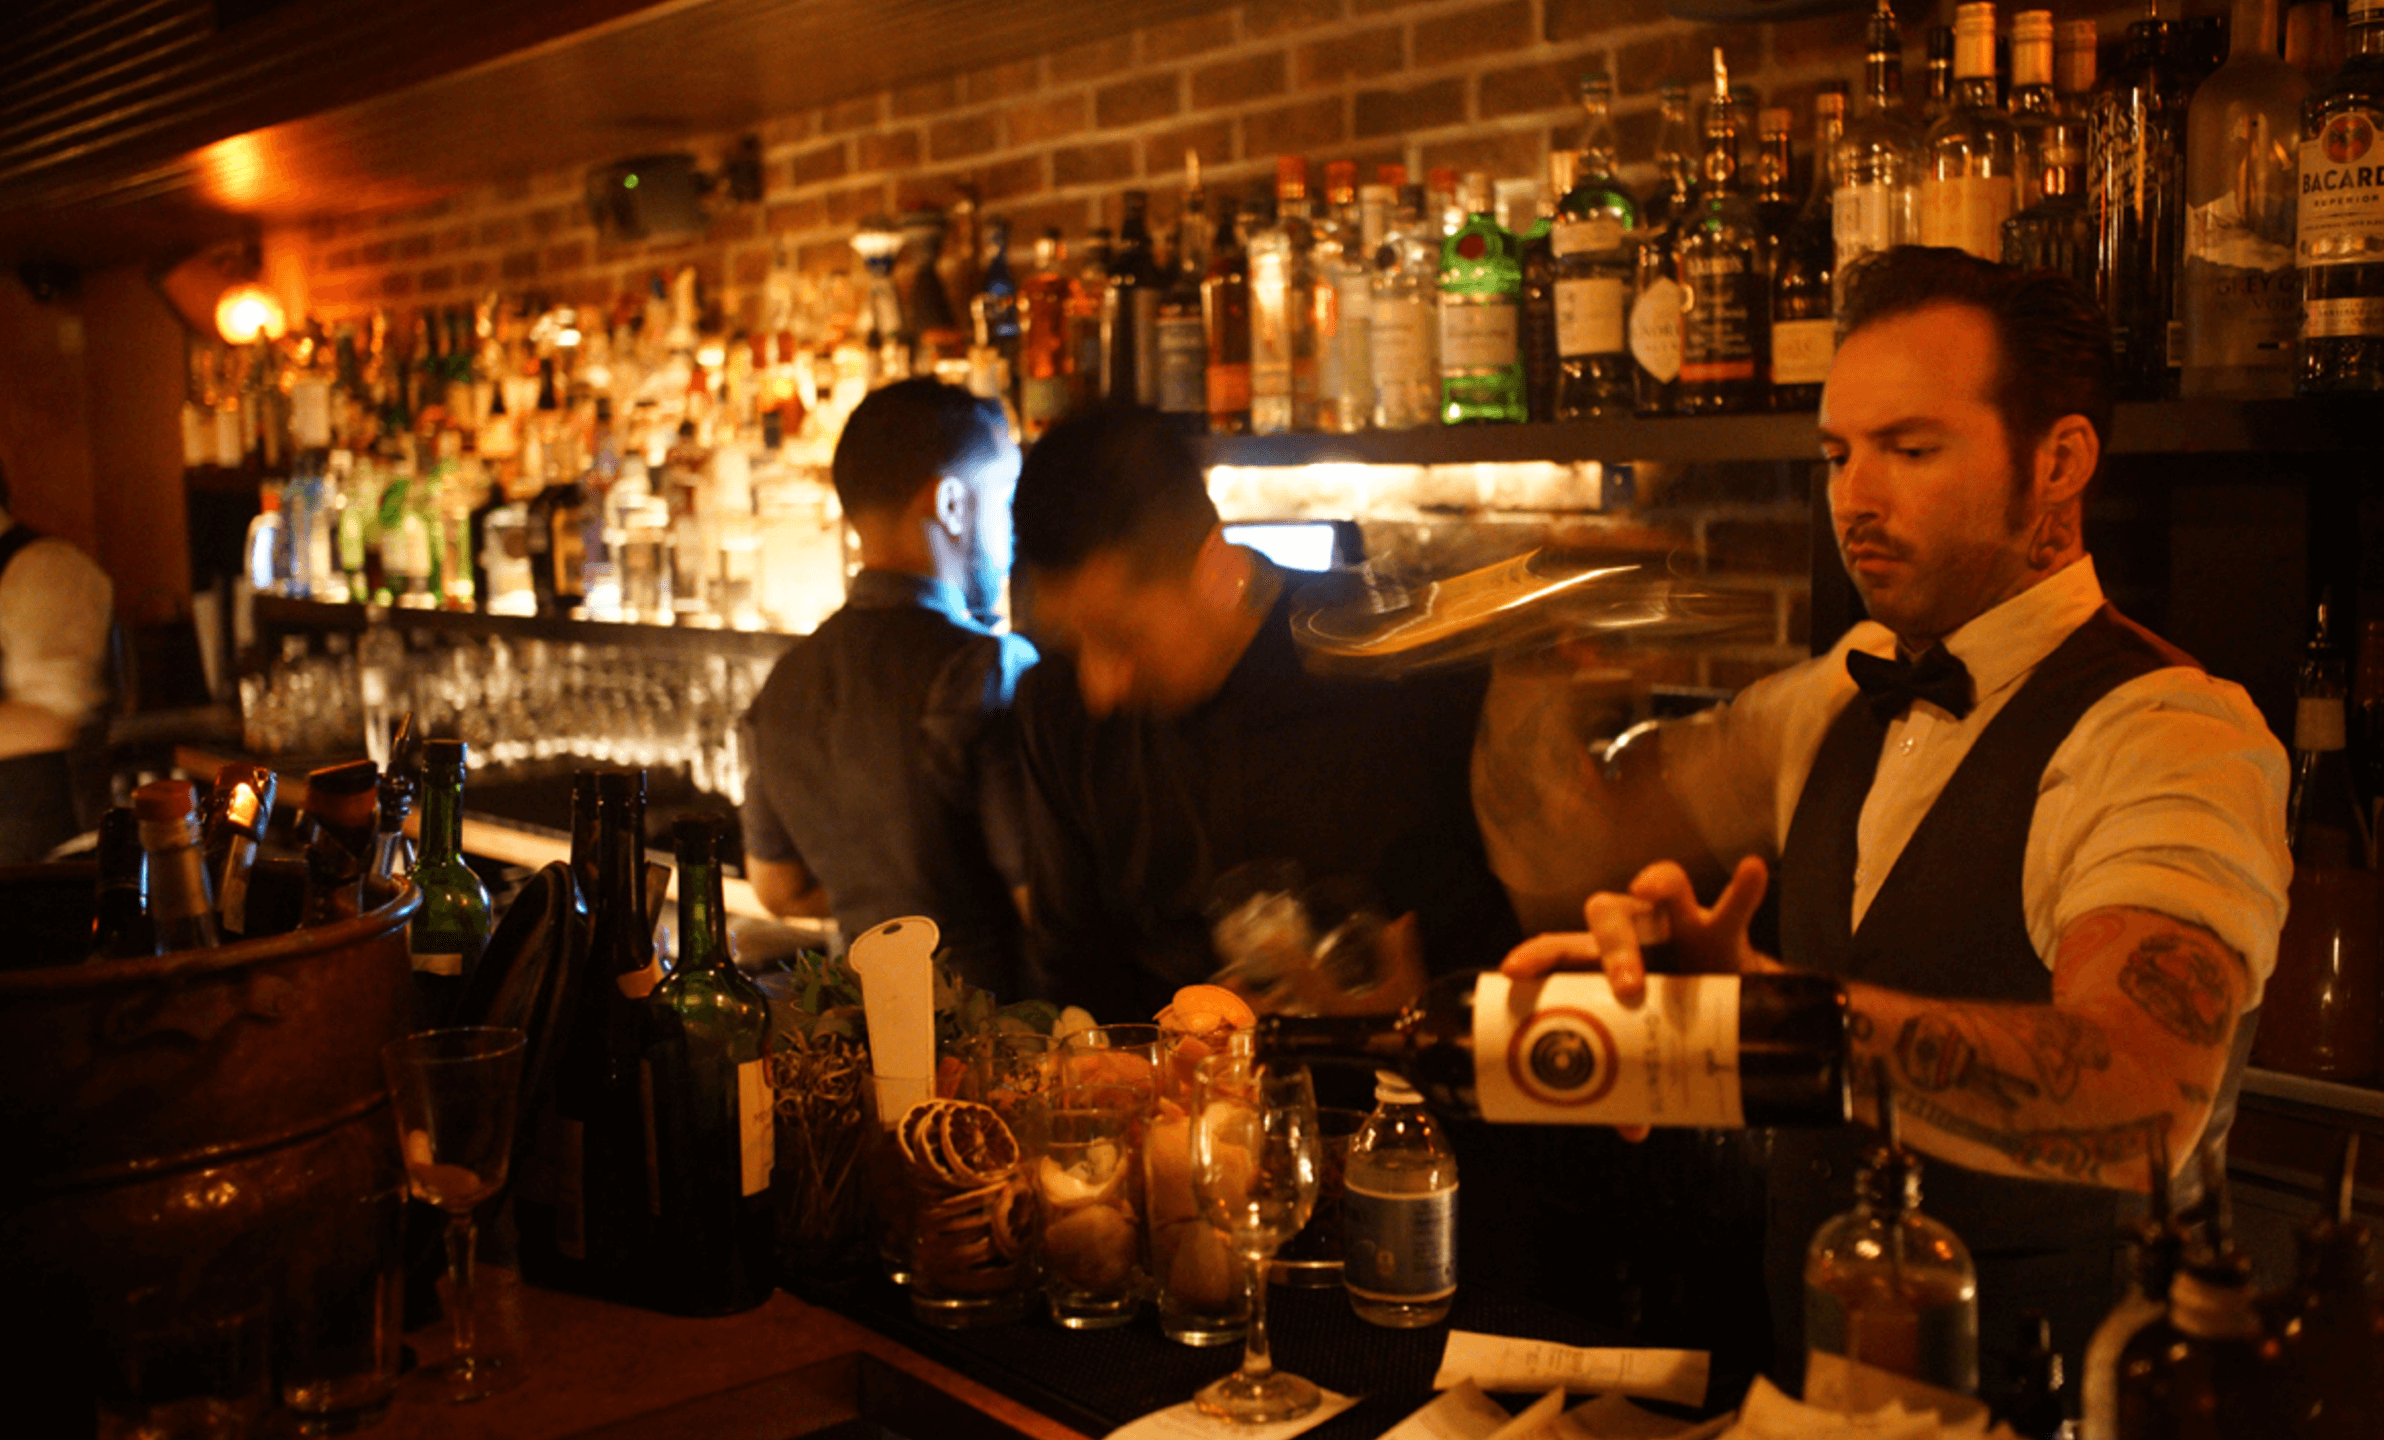 Nightlife Bars Bathtub Gin Speakeasy Barmen